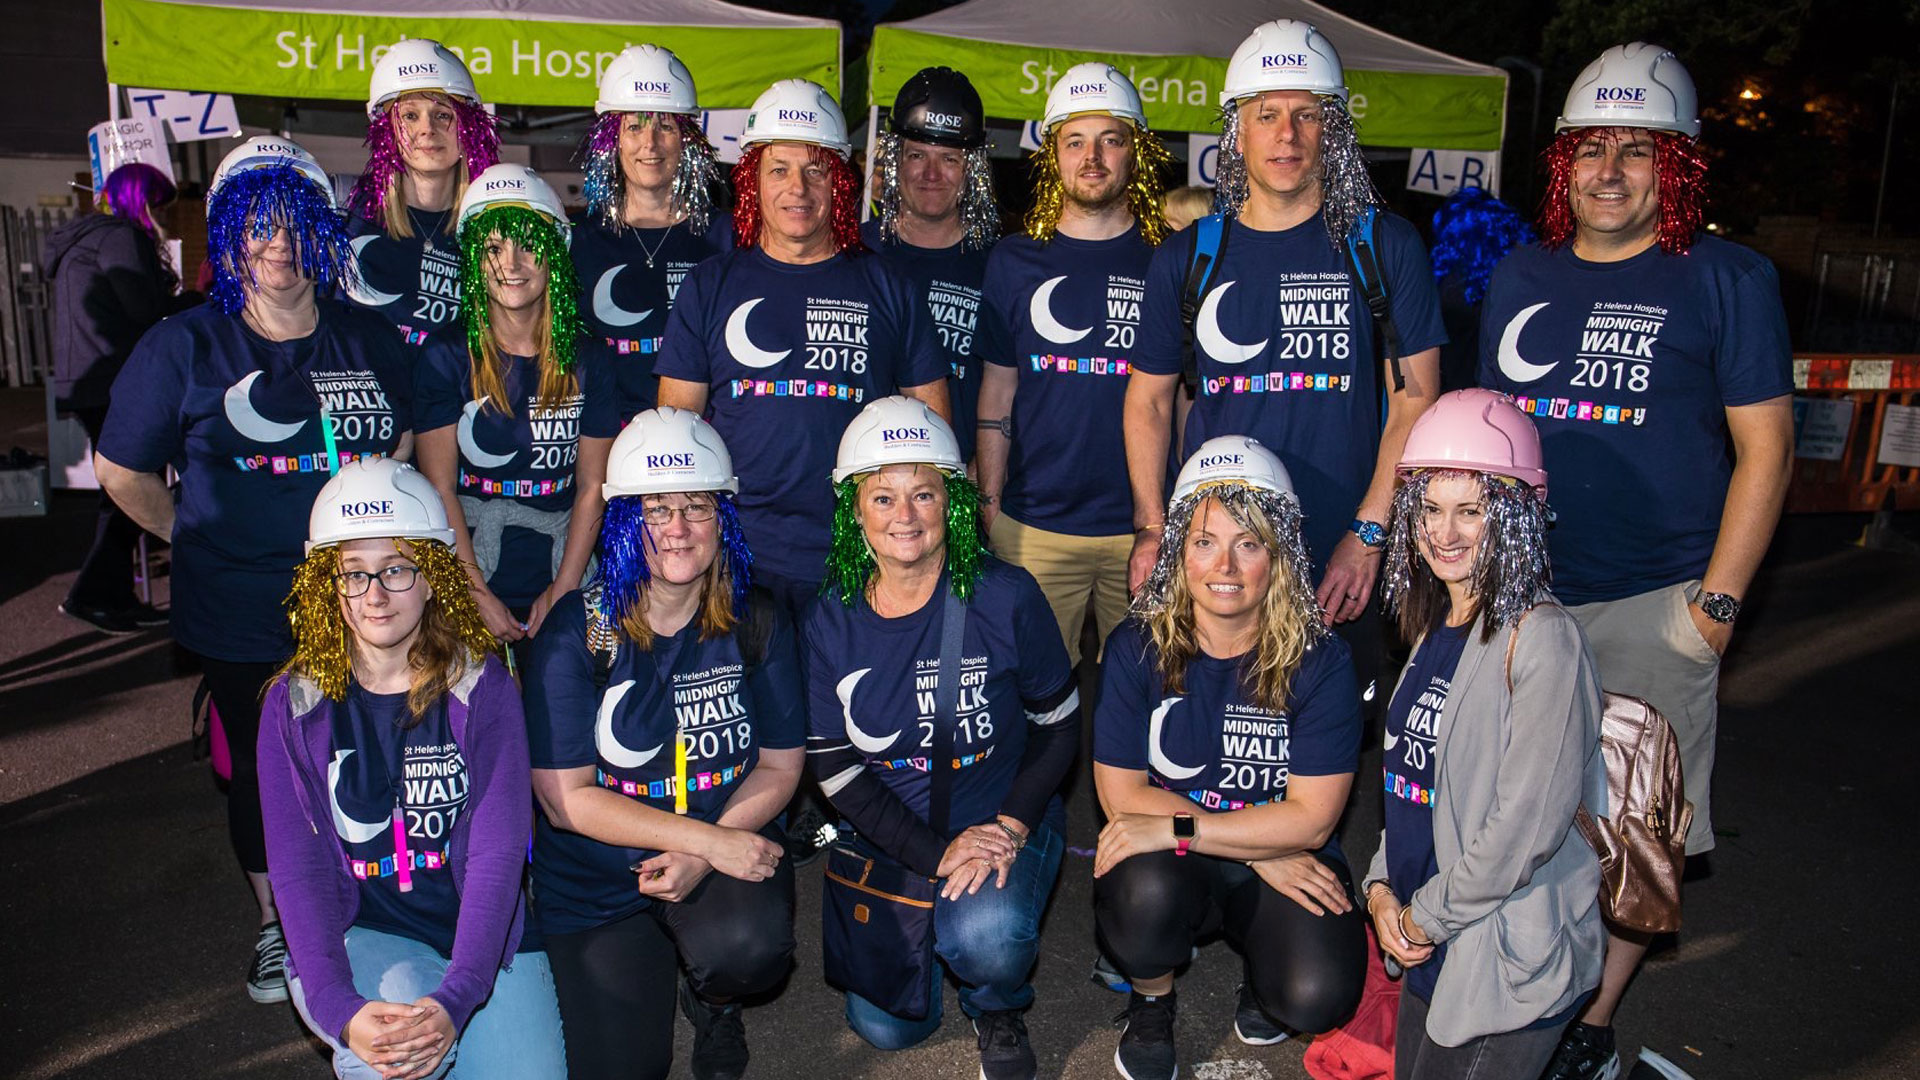 Midnight Walk for St Helena Hospice